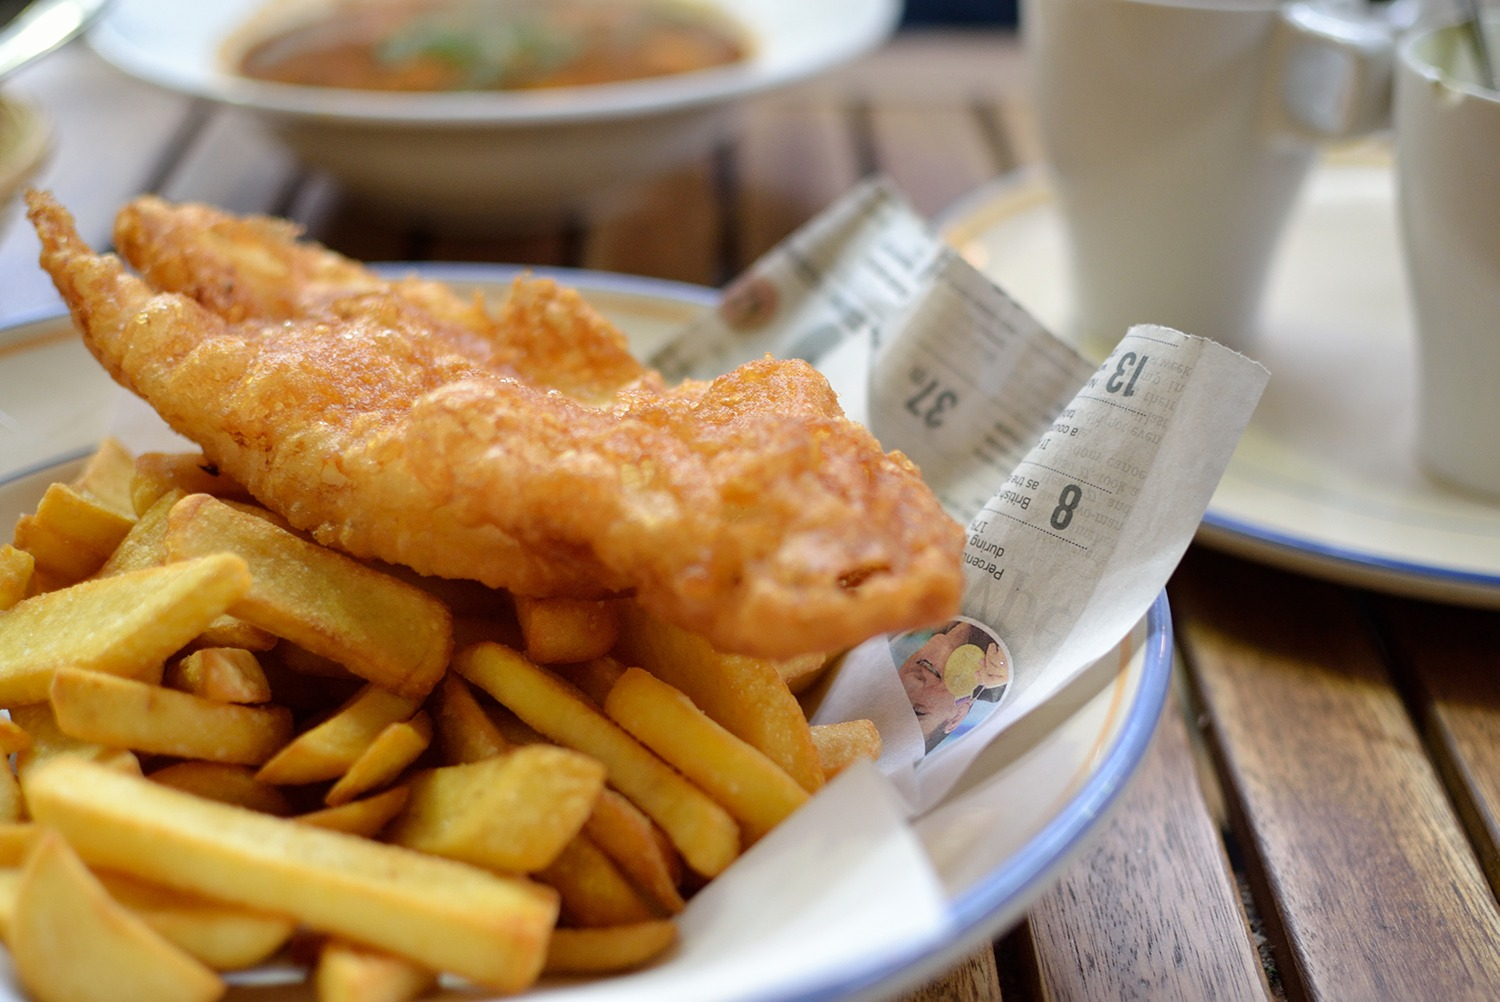 The South West's top 5 Fish & Chip Shops